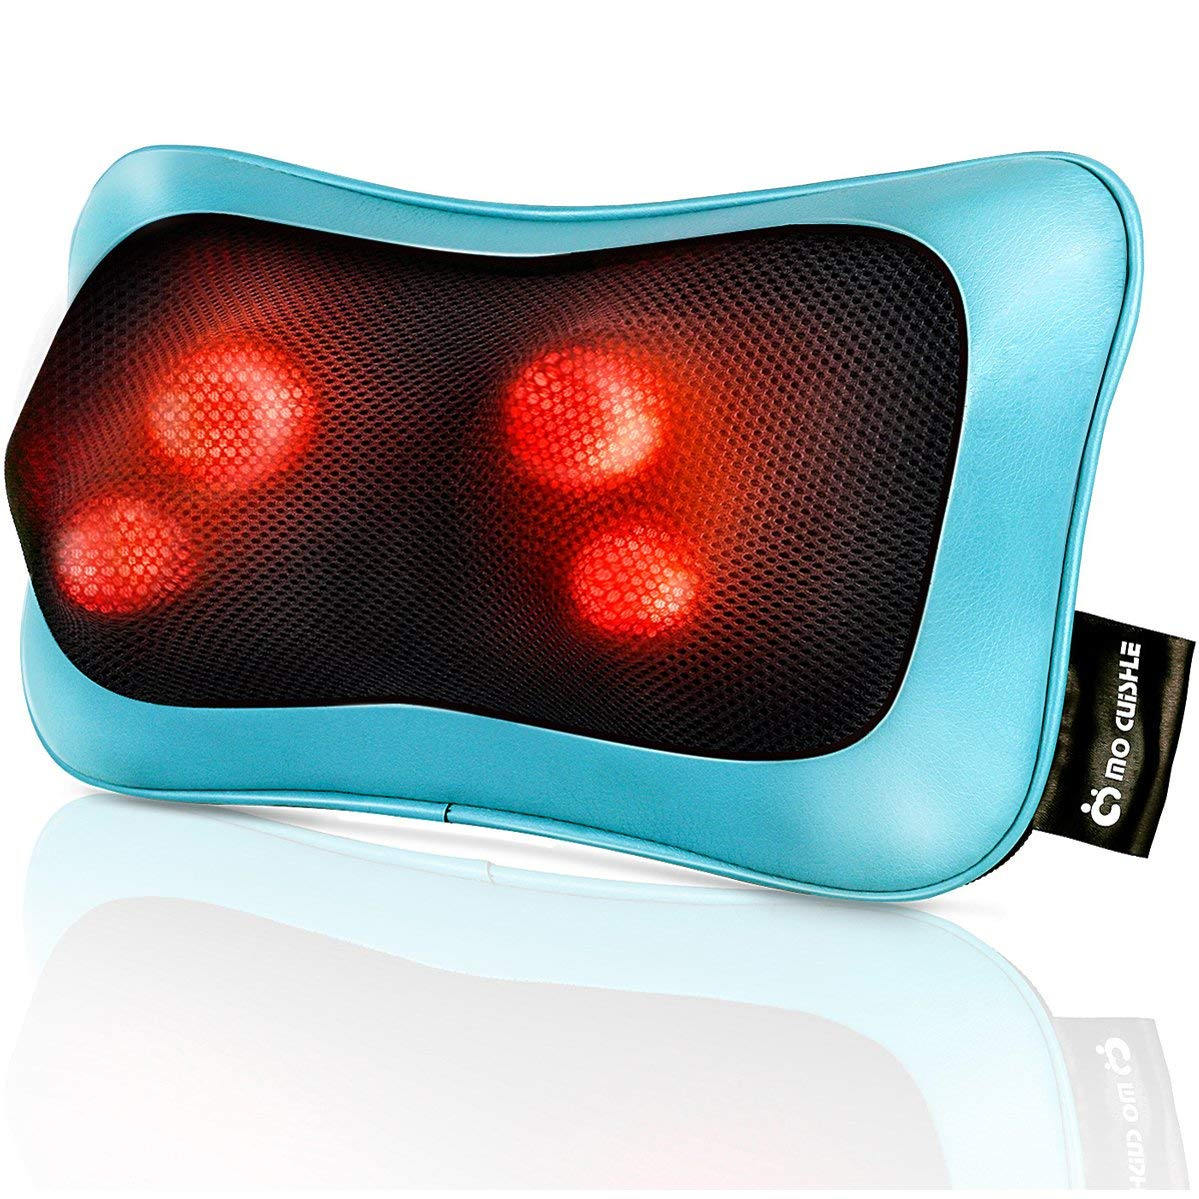 Shiatsu Neck Back Massager Pillow with Heat - Deep Tissue Kneading Massage for Back, Neck, Shoulder, Leg, Foot - Perfect Gift for Men/Women/Mom/Dad, Stress Relax at Home Office and Car by Mo Cuishle